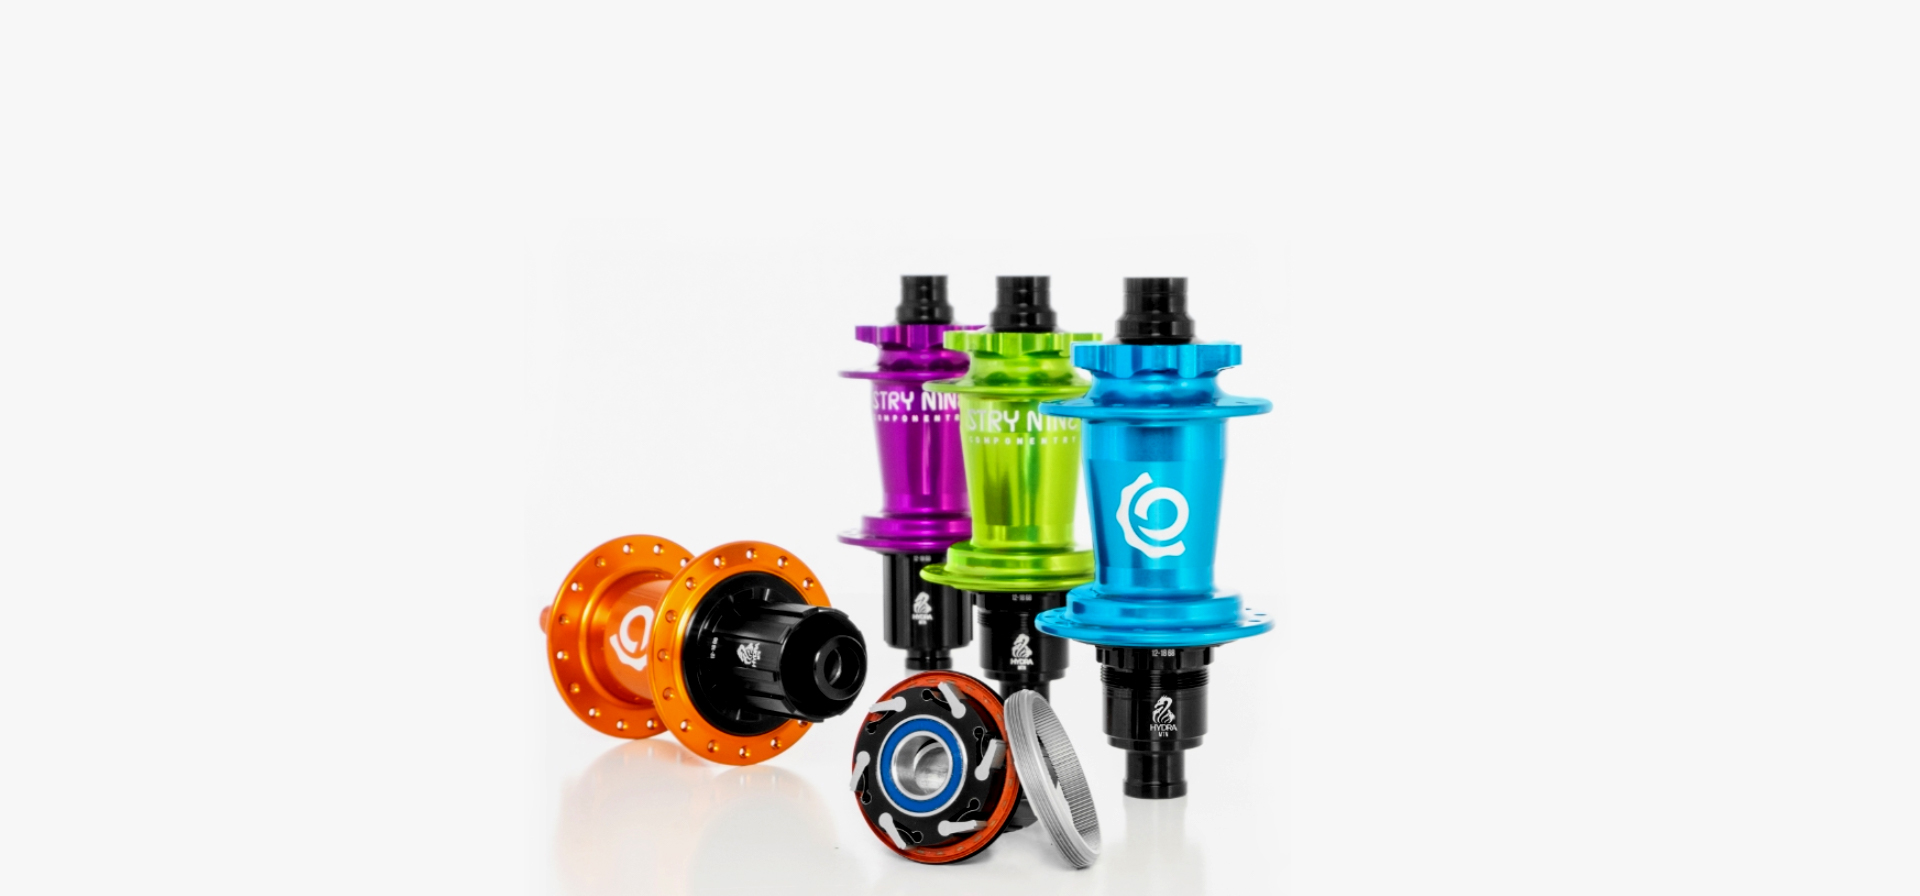 all-new-industry-nine-hydra-classic-iso-6-bolt-disc-mtn-fatbike-rear-thru-axle-hubs-orange-turquoise-lime-purple-hubshell-6-pawl-ratchet-690-poe.jpg